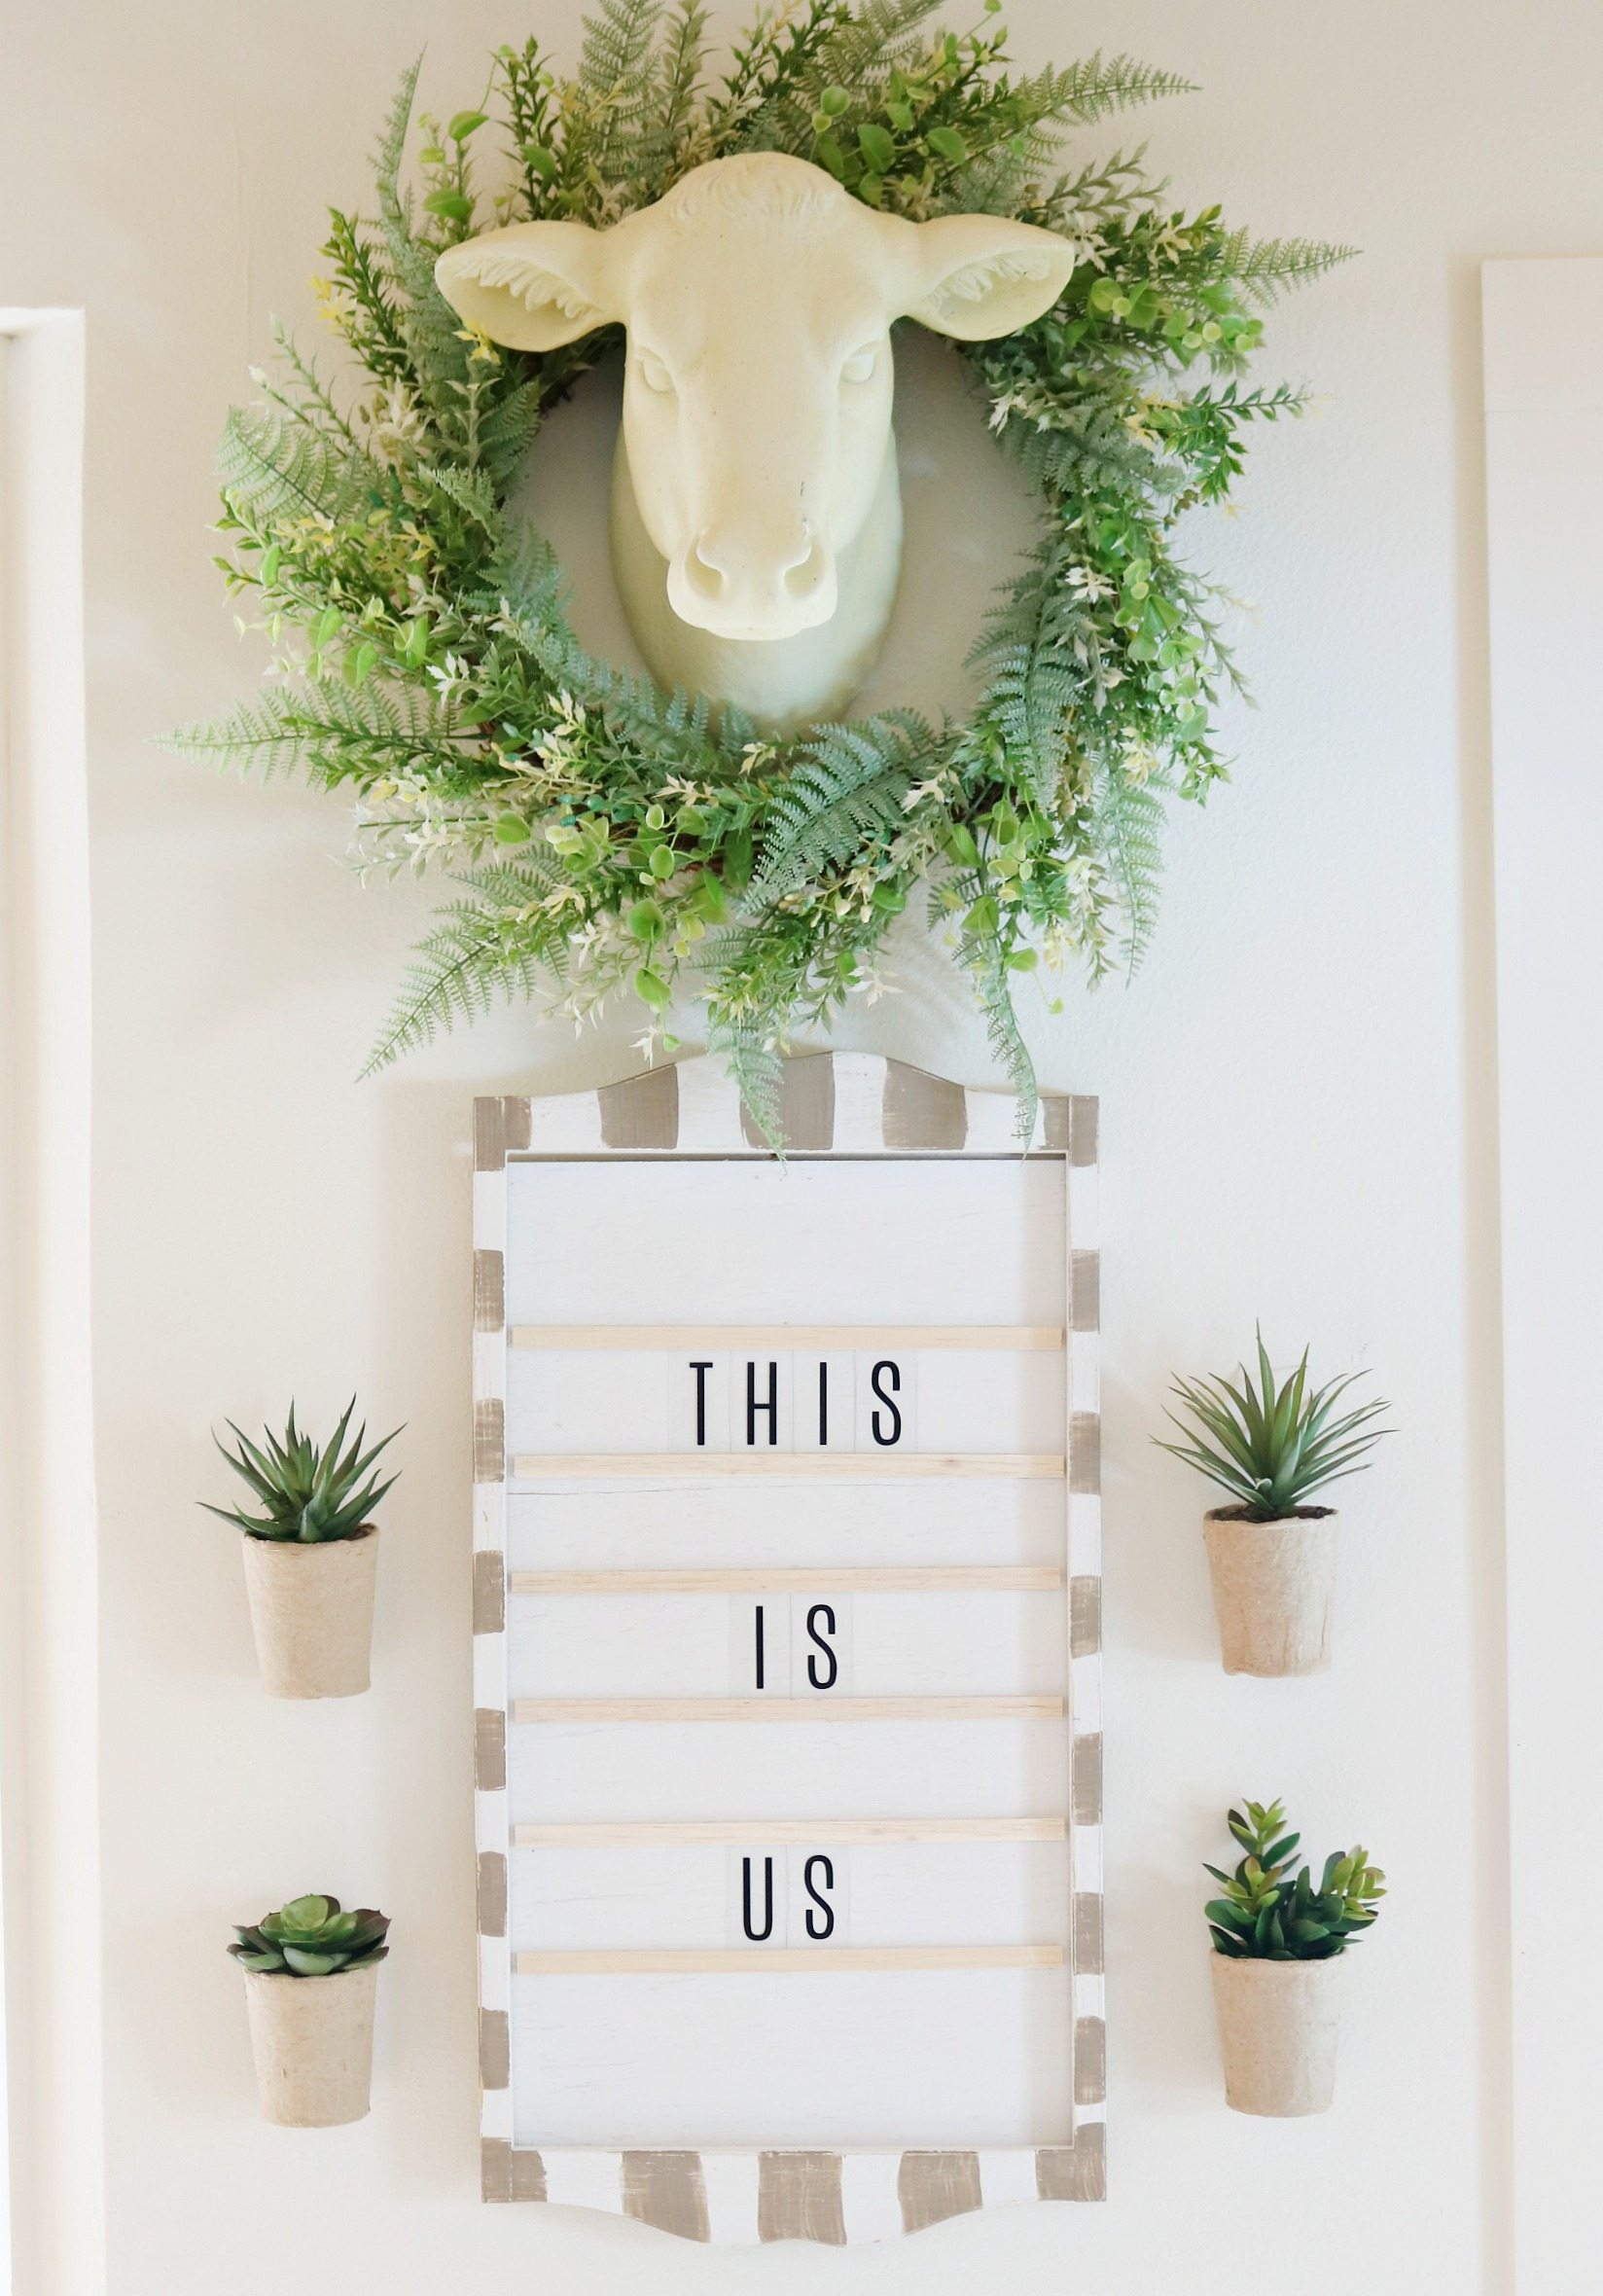 The hanging succulent plants on the wall compliment the neutral decor.